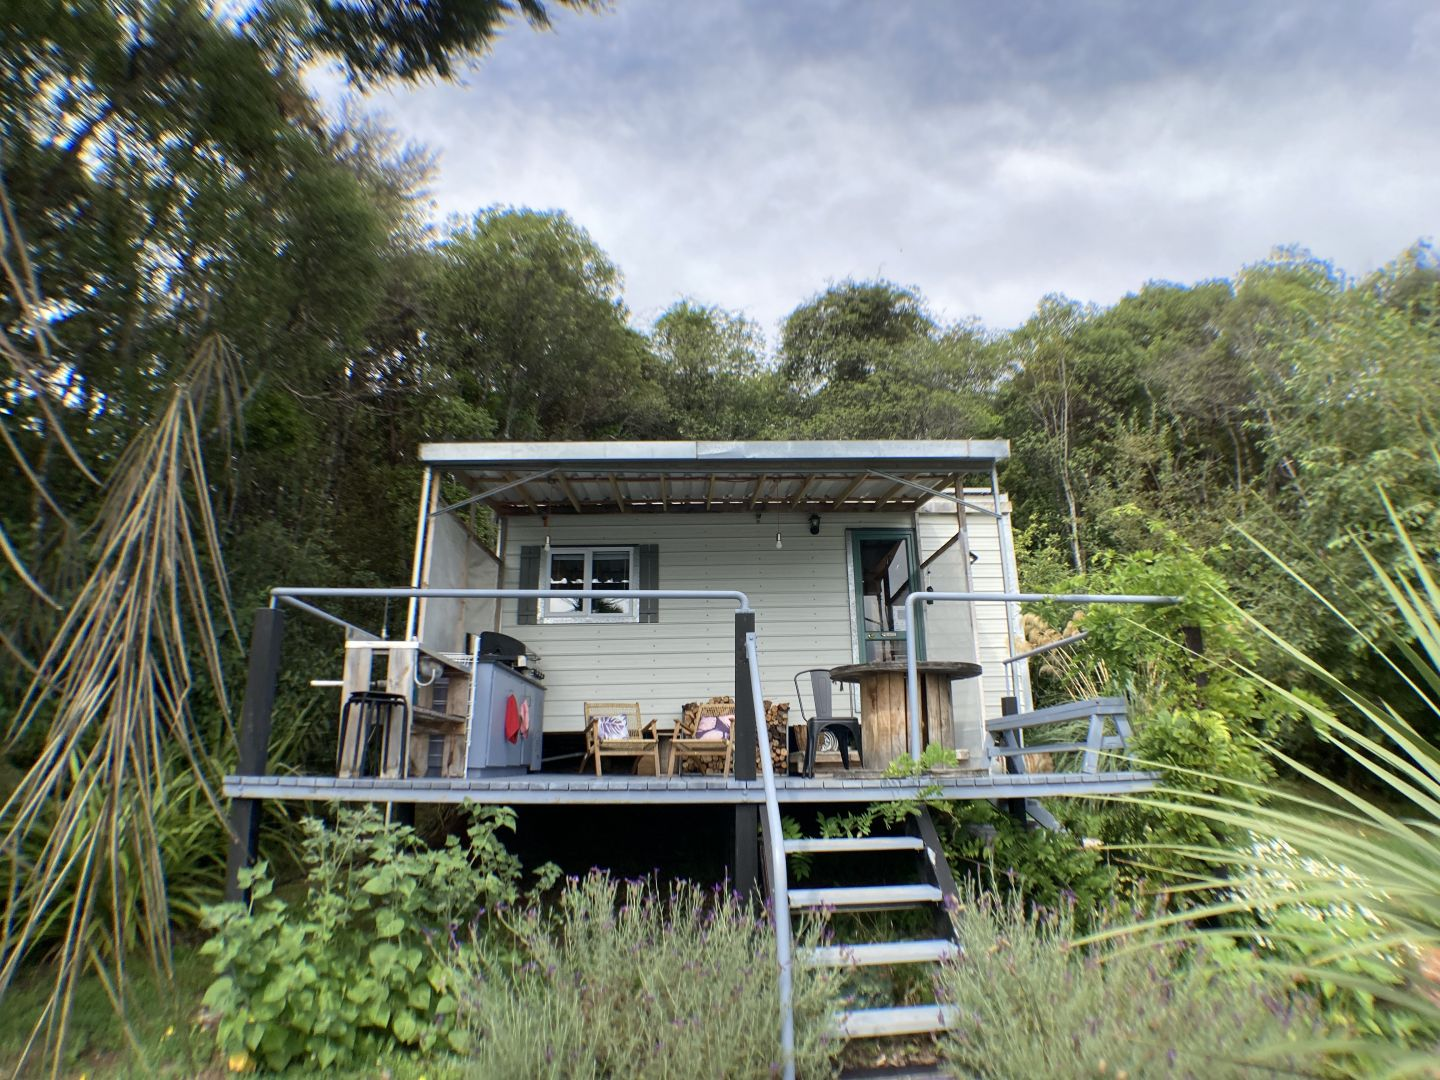 South Island Tiny House Airbnb in Dunedin- OCEAN VIEWS